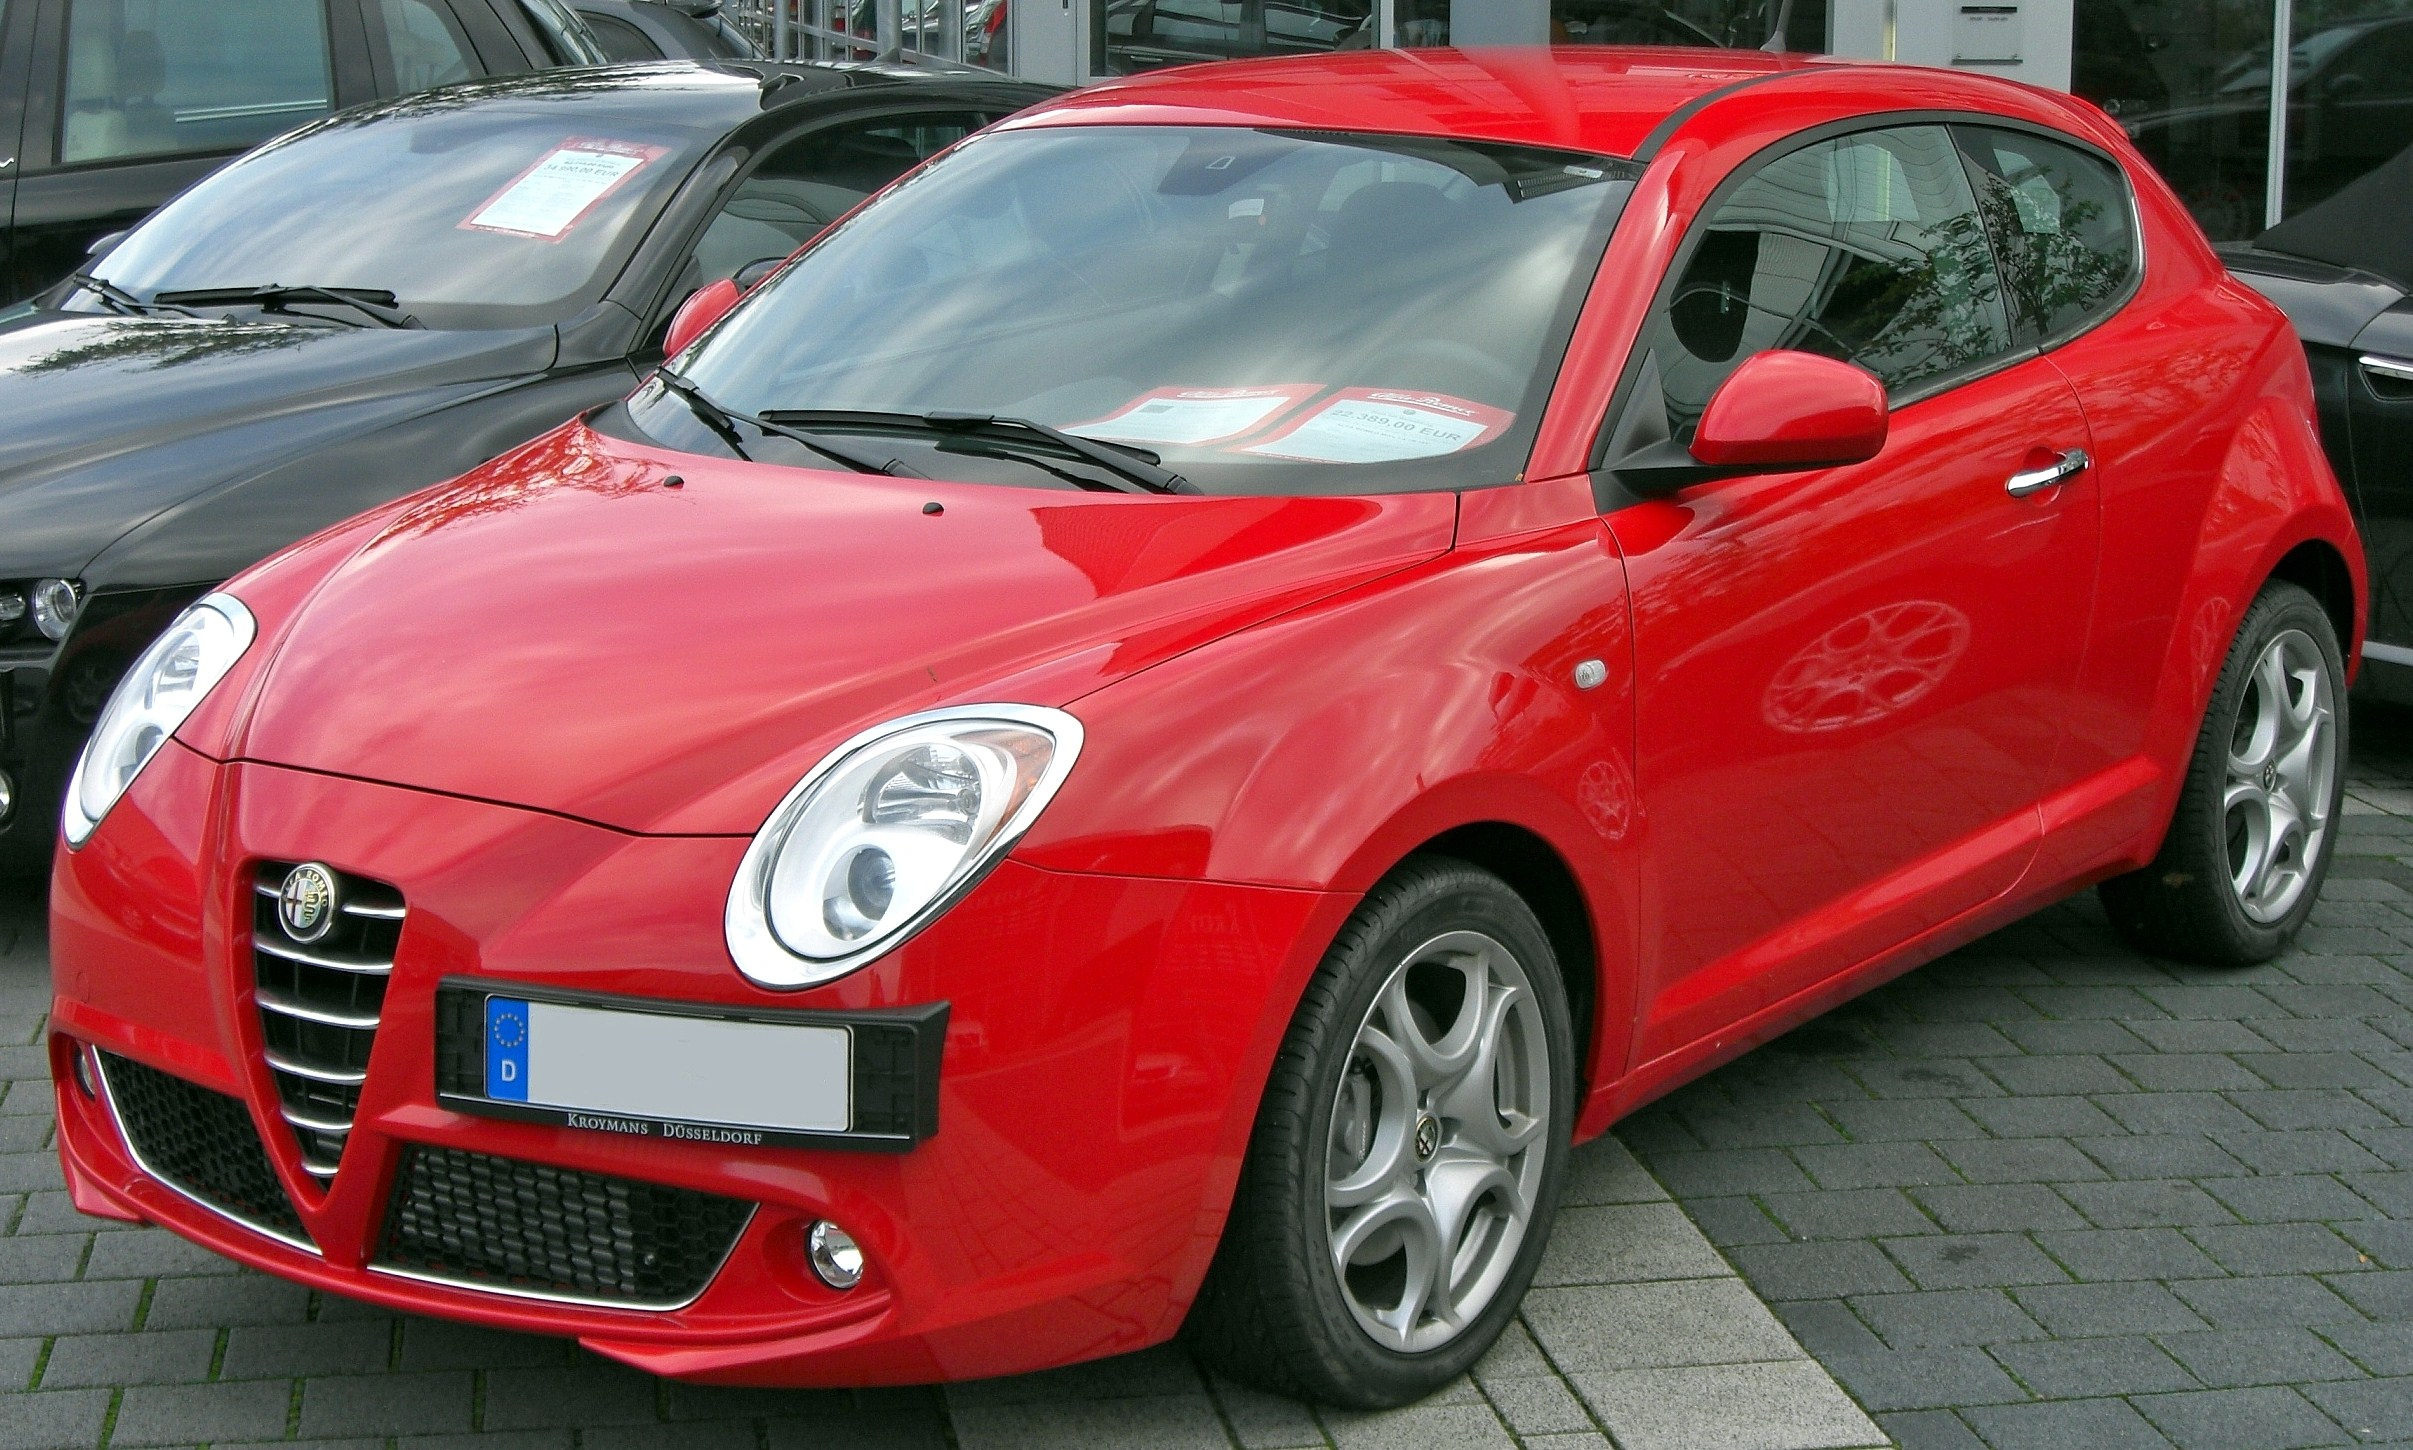 file alfa romeo mito 1 4 tb front jpg wikimedia commons. Black Bedroom Furniture Sets. Home Design Ideas